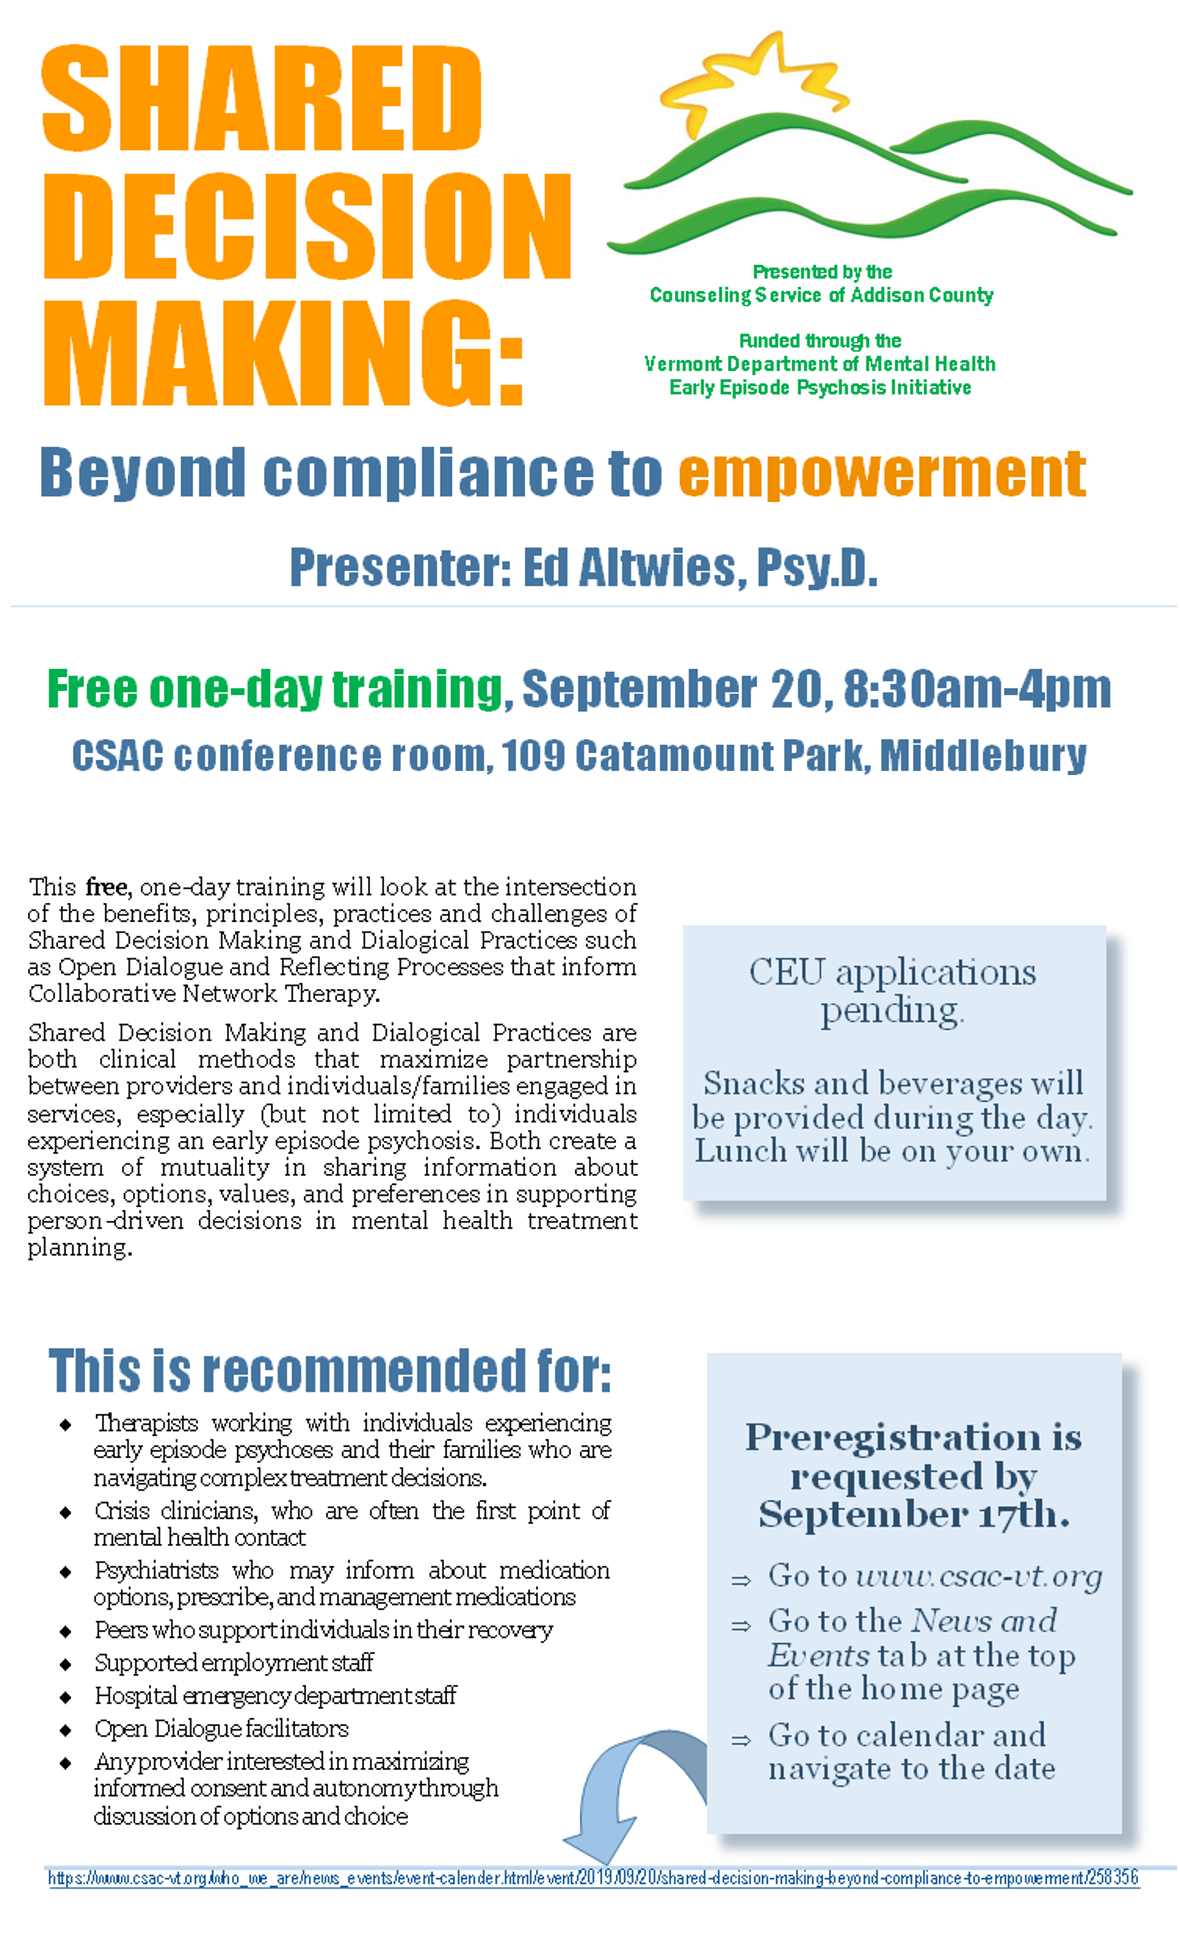 SHARED DECISION MAKING: Beyond compliance to empowerment